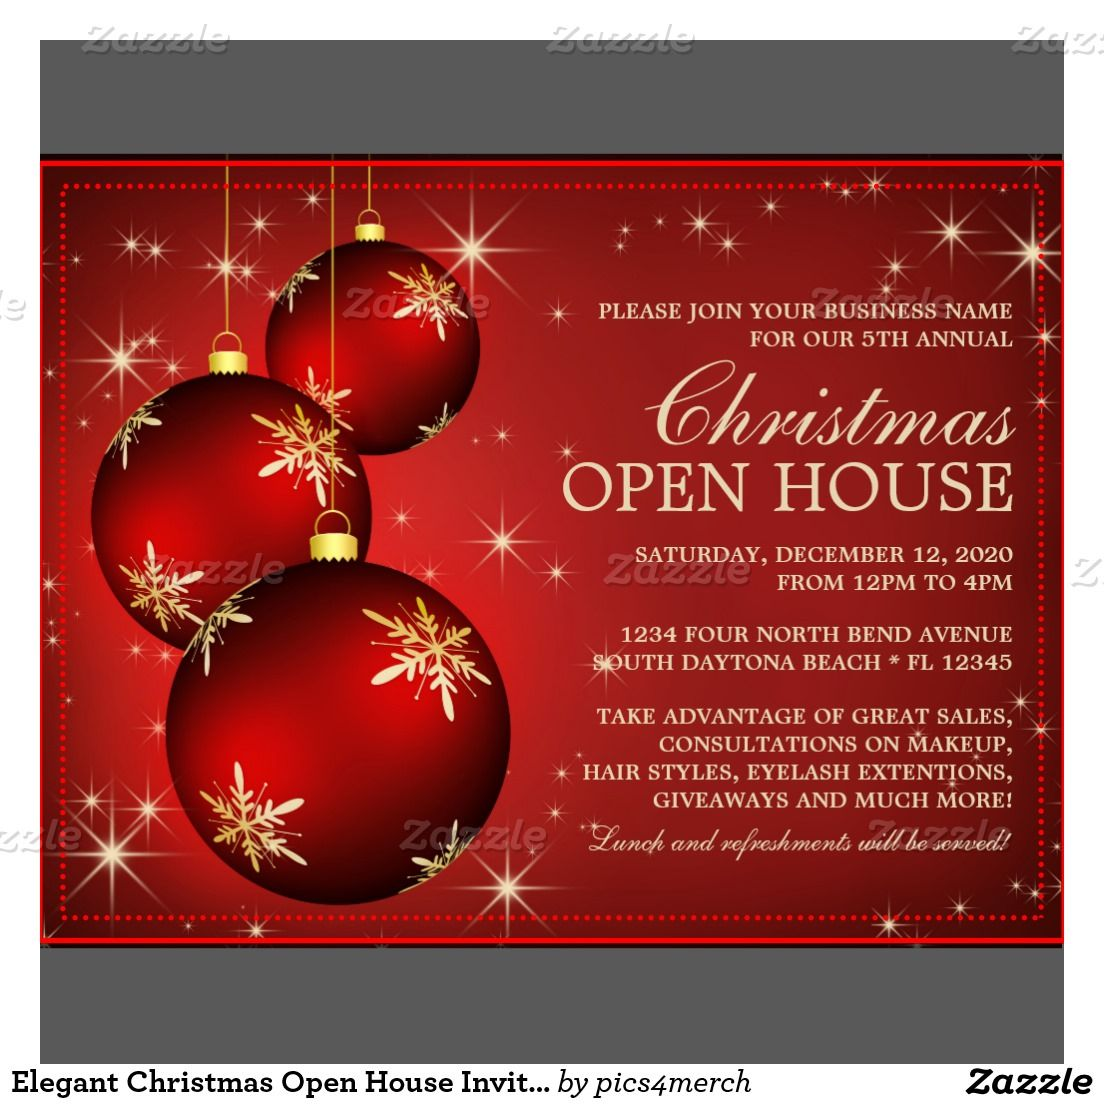 open house invitation template free - Google Search | BH open house ...